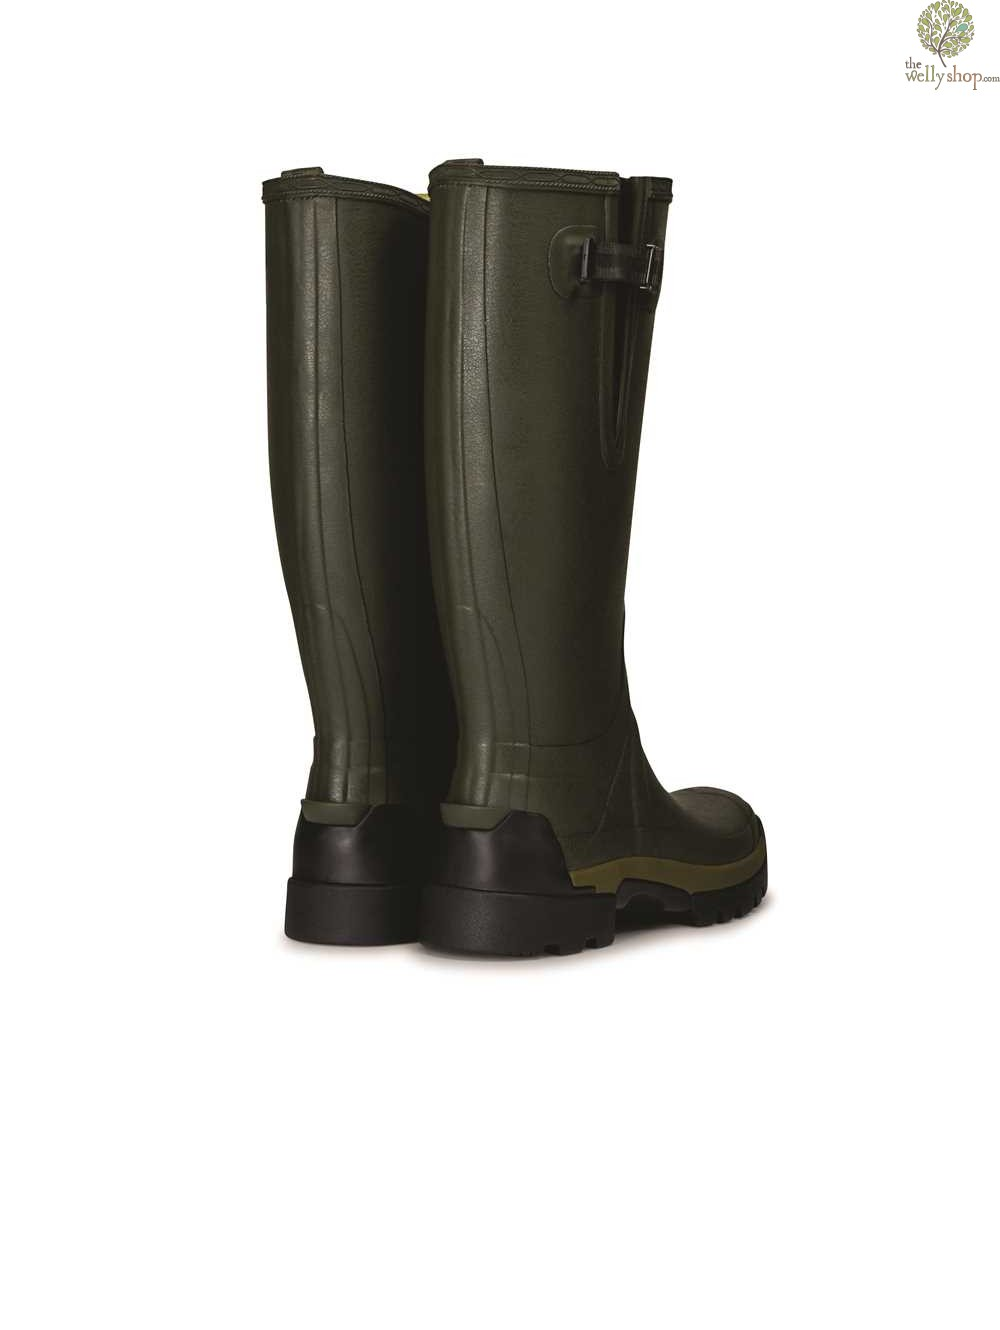 ... Hunter Men's Balmoral Bamboo Carbon Boots Dark Olive ...